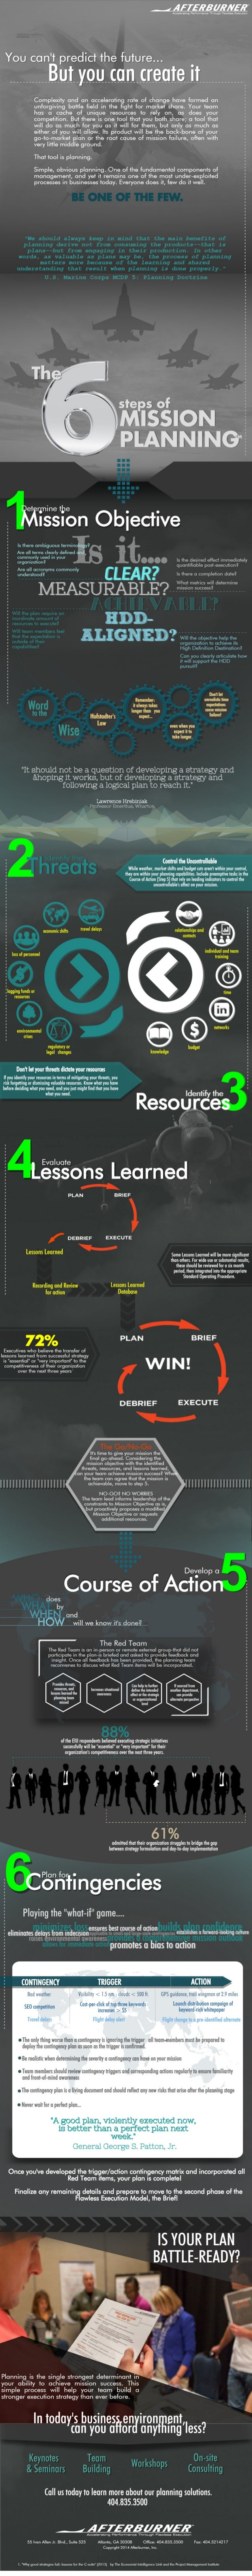 Infographic | The 6 Steps of Mission Planning